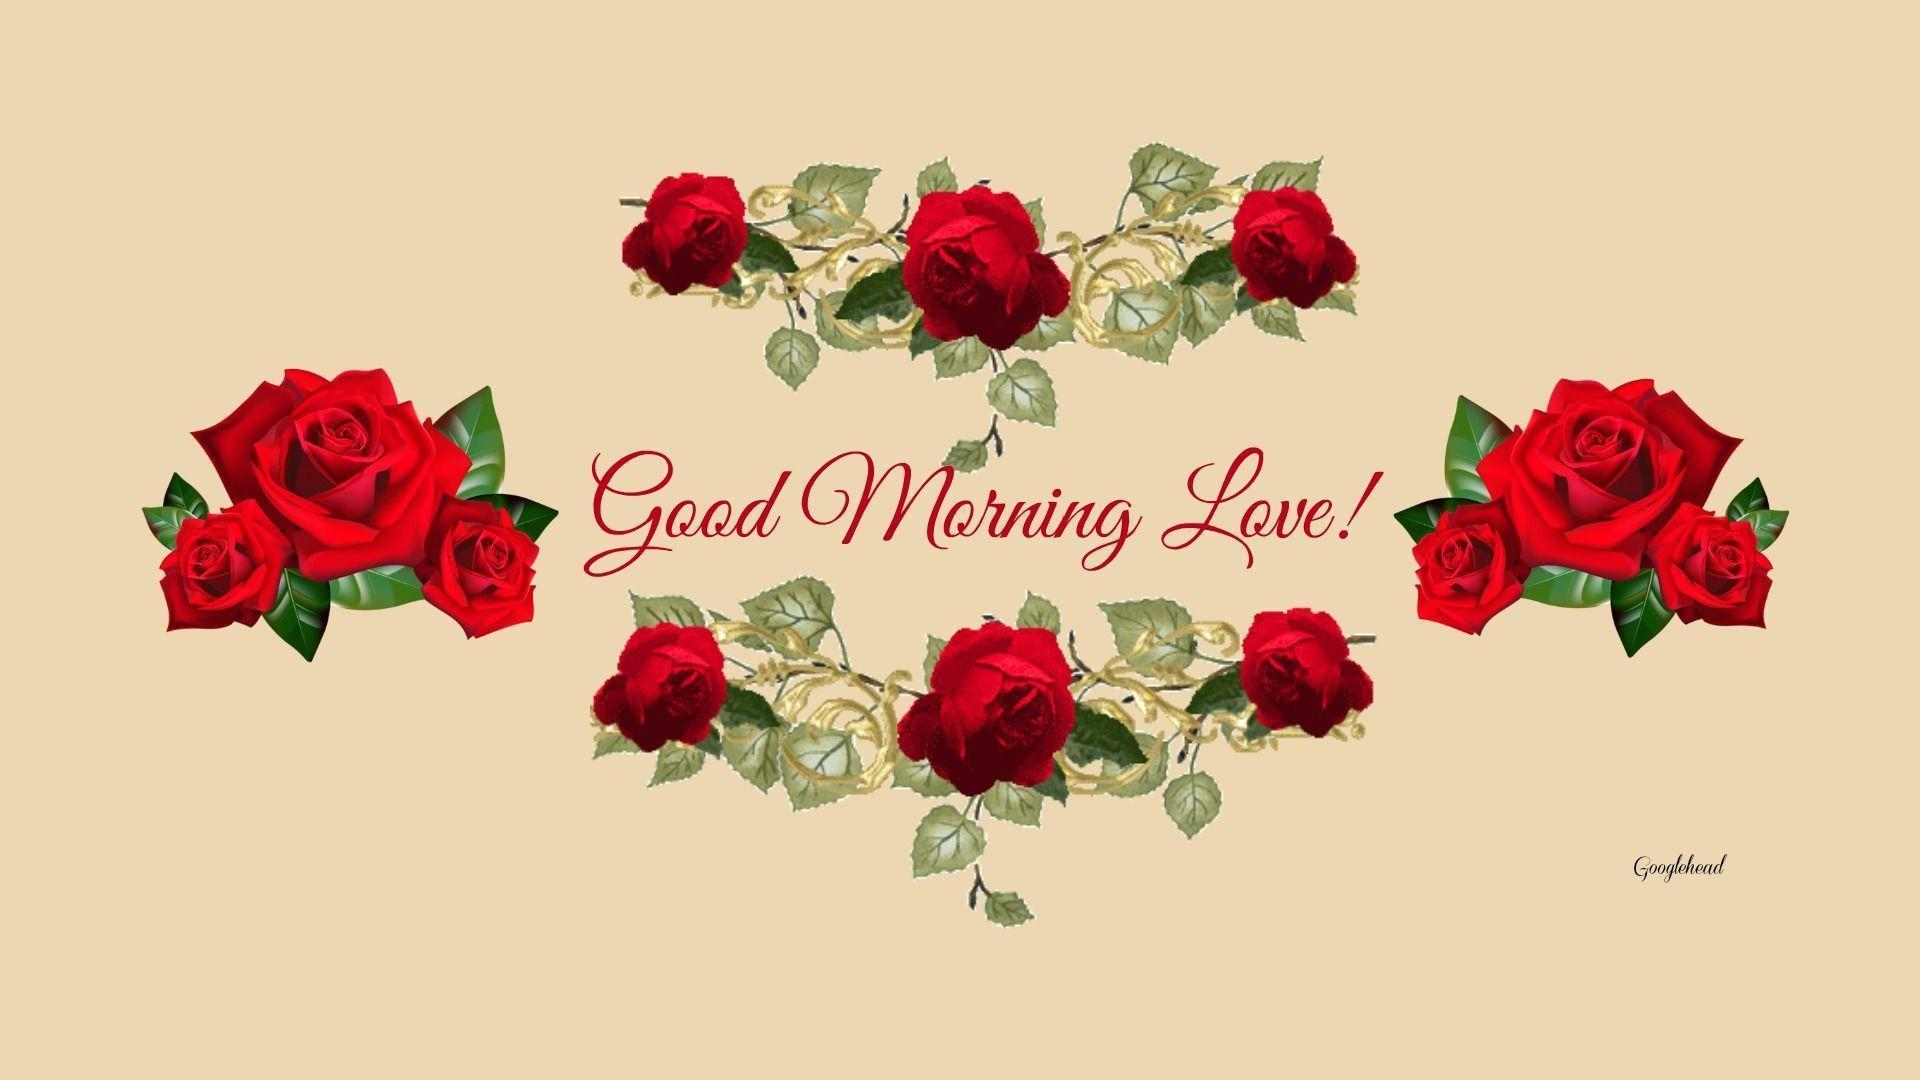 Love Wallpapers Good Morning : Wallpapers Good Morning Love - Wallpaper cave